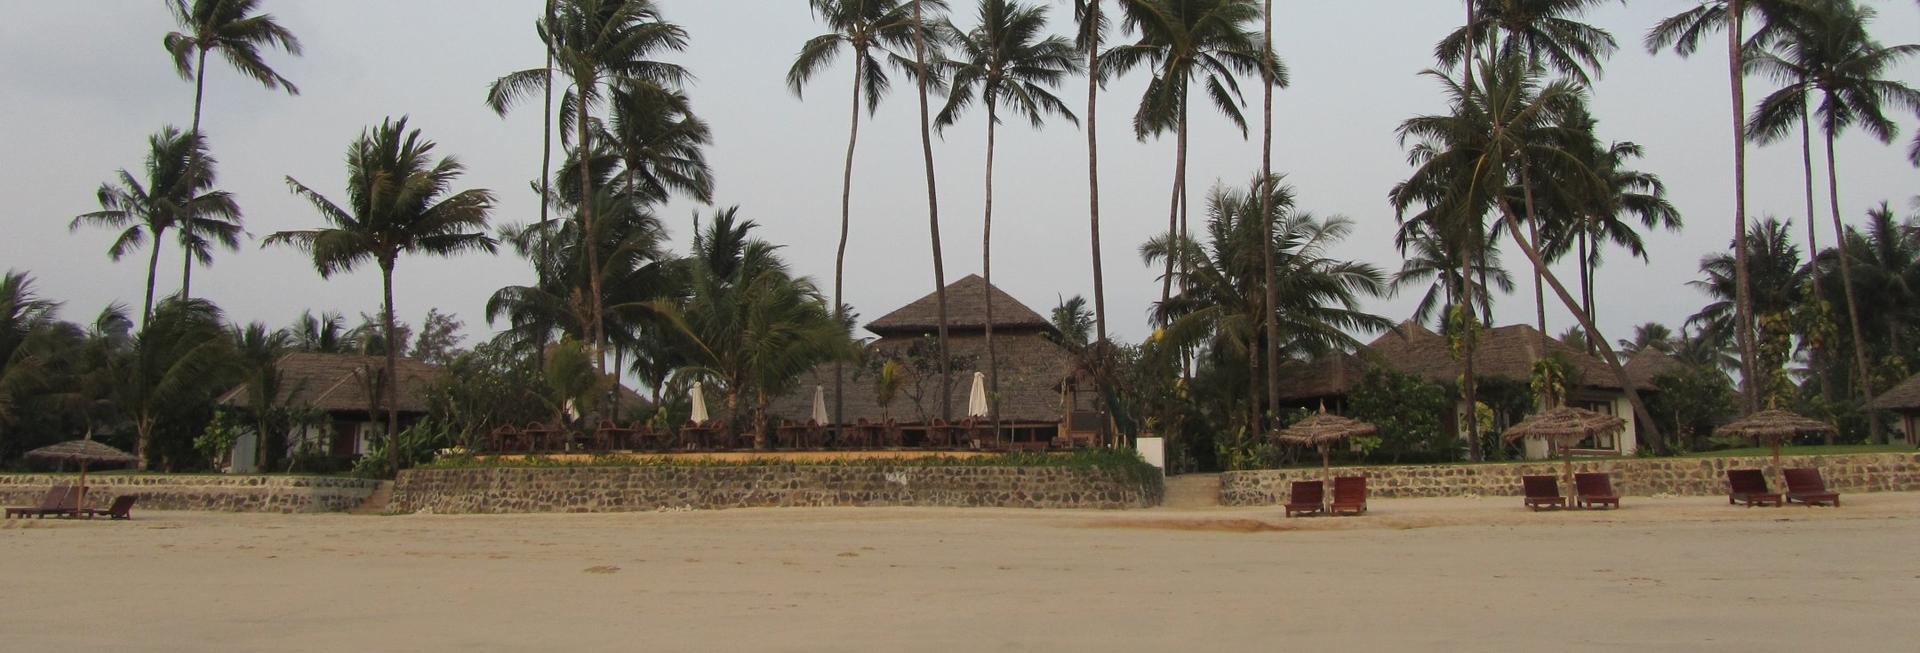 Ngapali Bay Villas & Spa